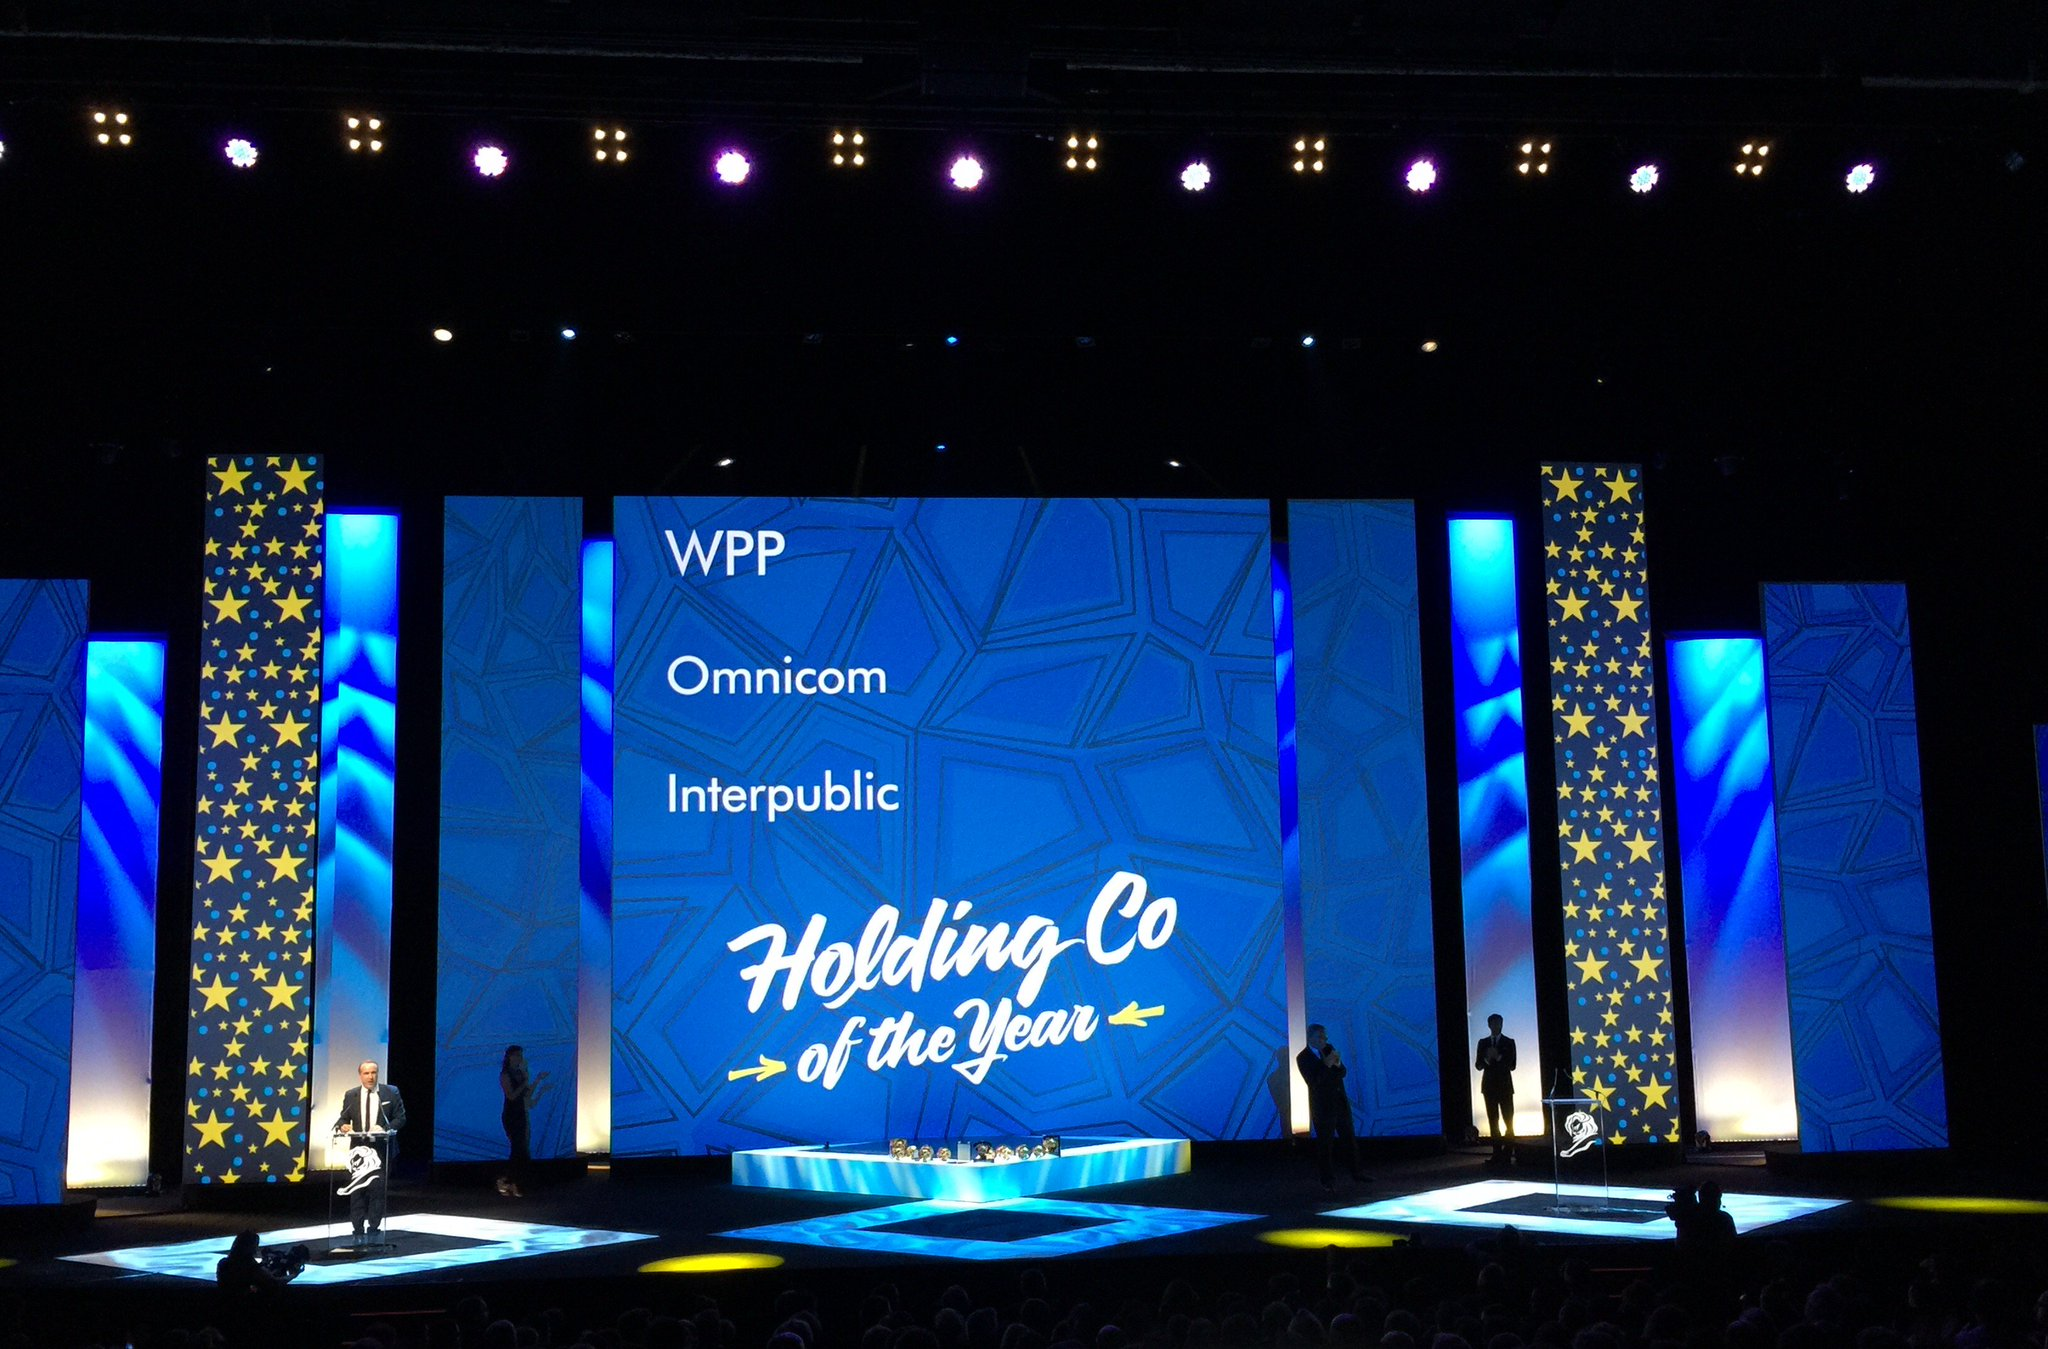 RT @WPP: Creative holding company of the year for WPP and network of the year for @Ogilvy #CannesLions https://t.co/VHfKoSBqOE